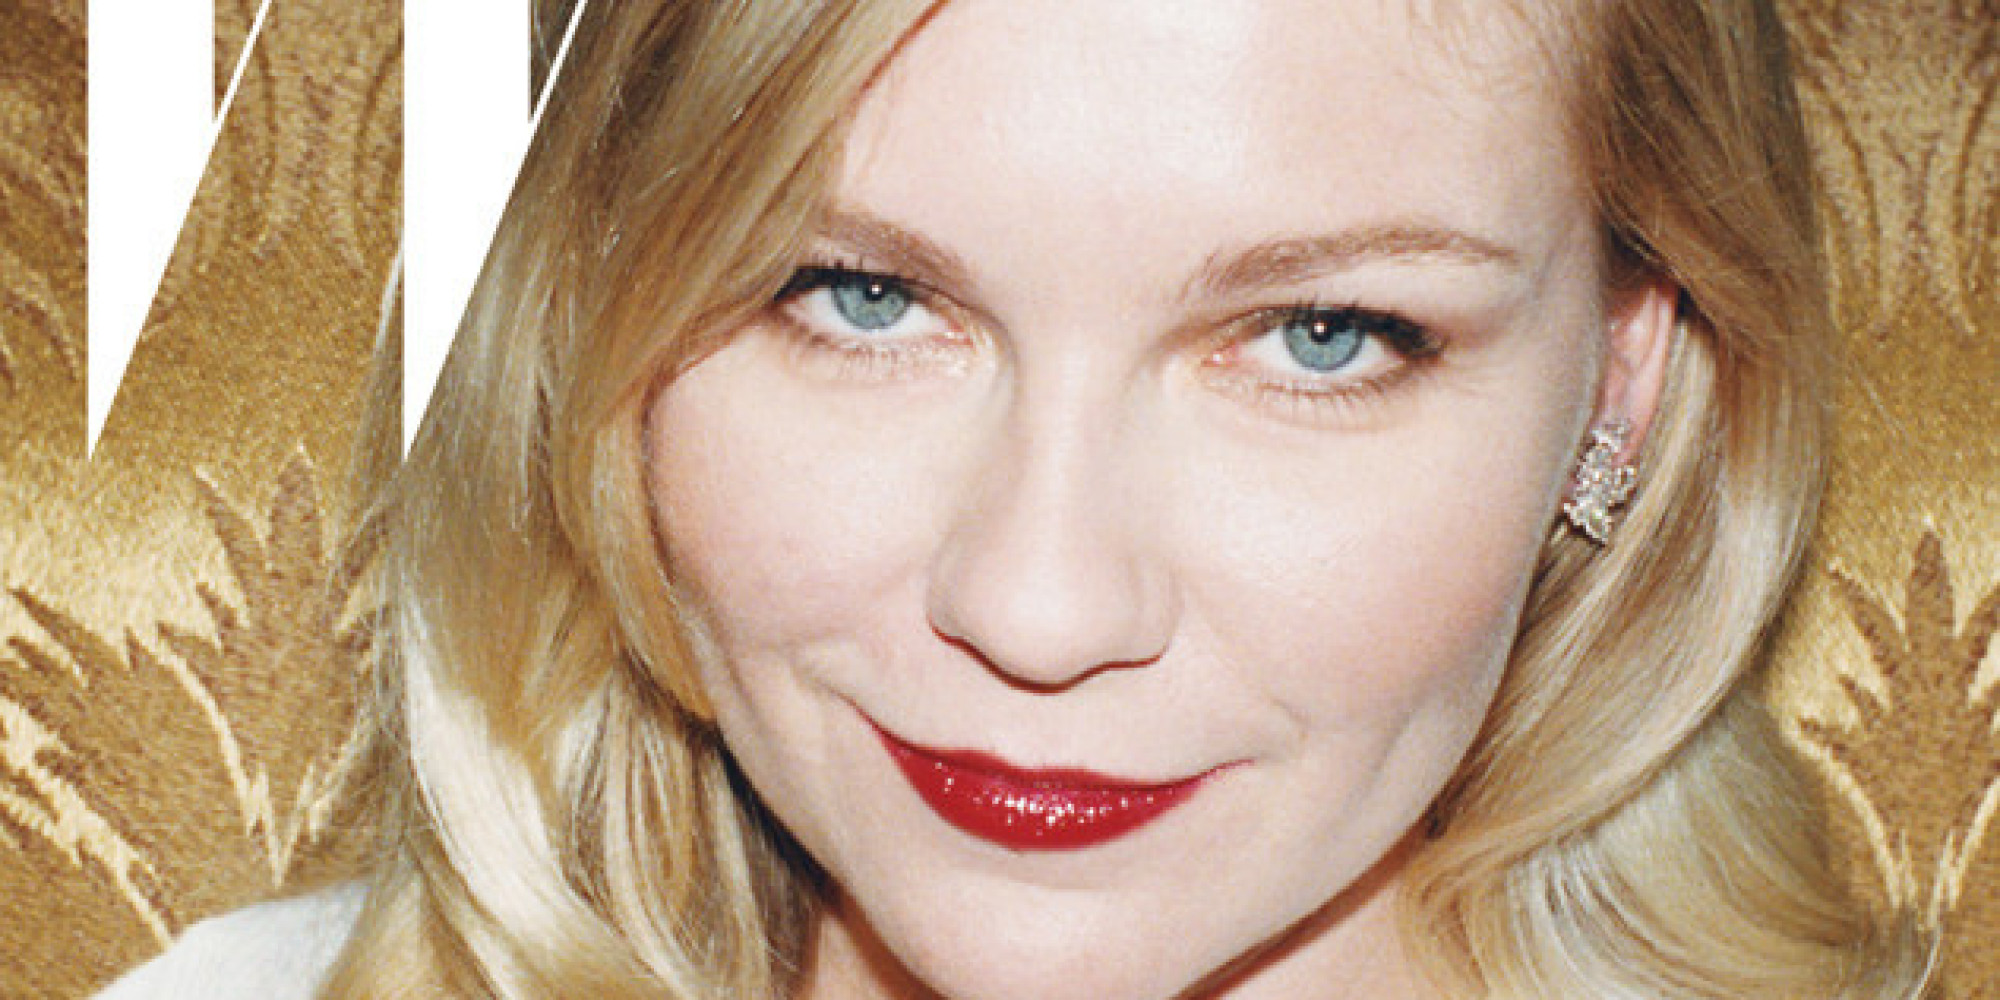 kirsten dunst фильмографияkirsten dunst 2016, kirsten dunst instagram, kirsten dunst 2017, kirsten dunst jesse plemons, kirsten dunst spiderman, kirsten dunst jumanji, kirsten dunst films, kirsten dunst boyfriend, kirsten dunst twitter, kirsten dunst movies, kirsten dunst - turning japanese, kirsten dunst фильмы, kirsten dunst wiki, kirsten dunst eating, kirsten dunst young, kirsten dunst natal chart, kirsten dunst style, kirsten dunst site, kirsten dunst фильмография, kirsten dunst gallery